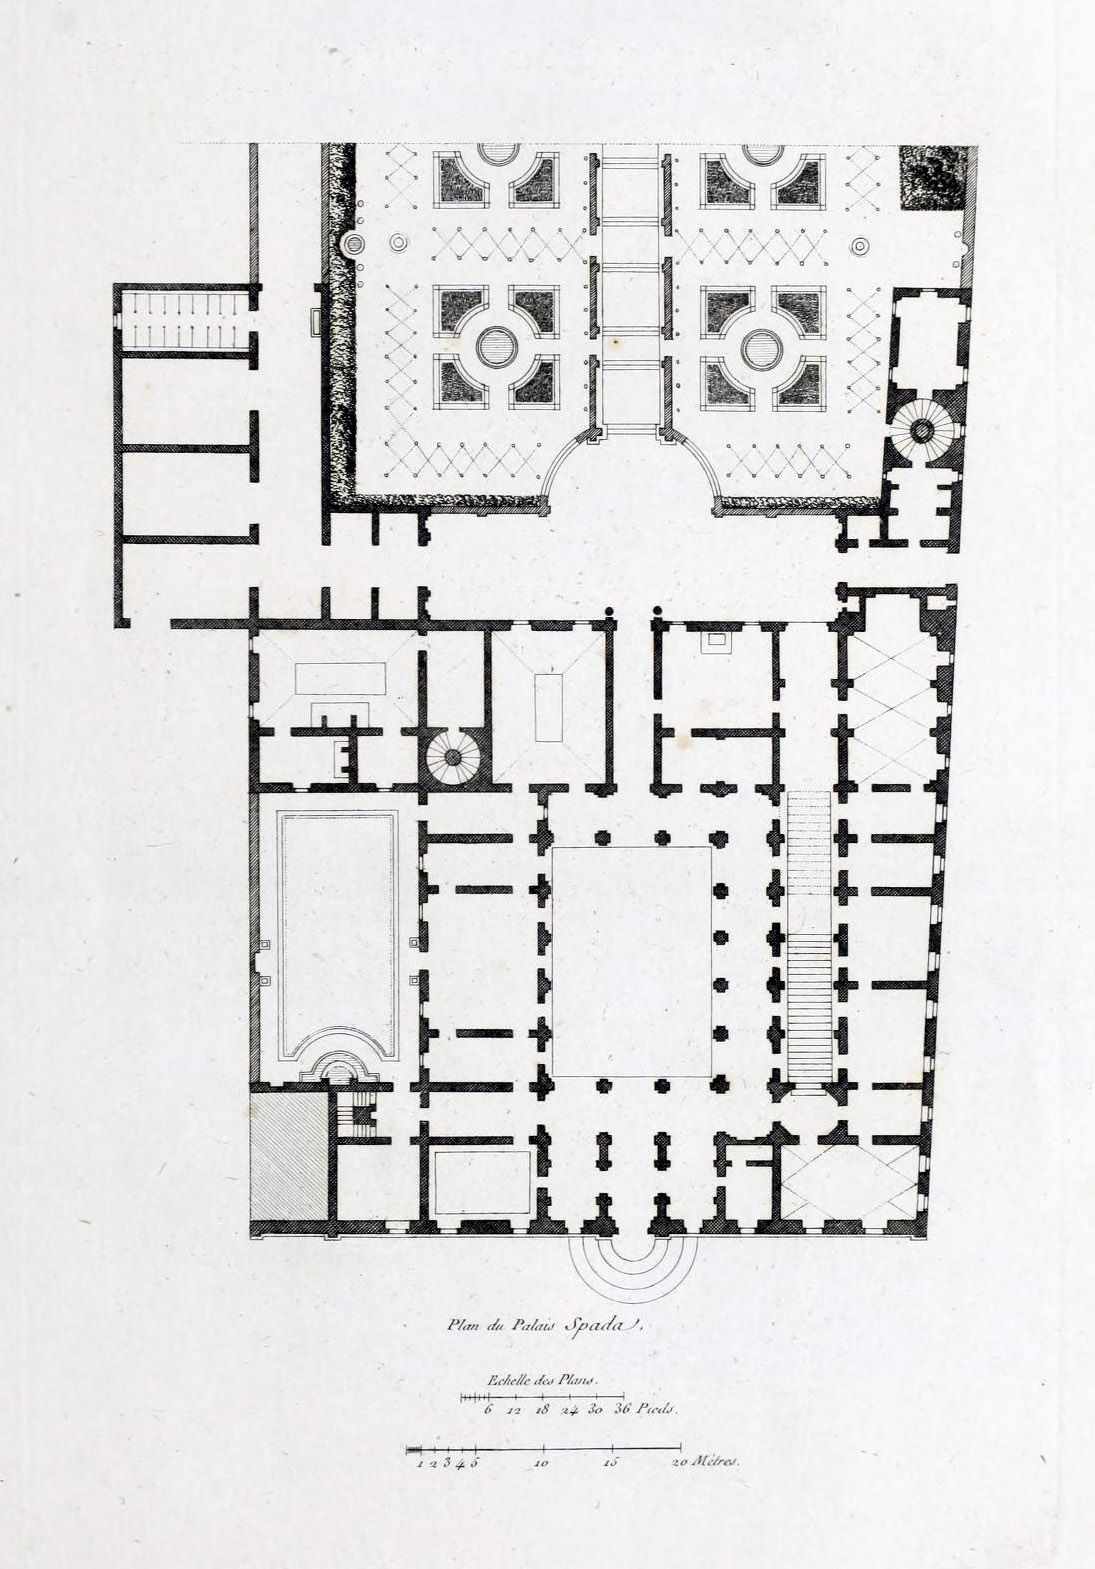 Floor Plan Of The Palazzo Spada Rome Floor Plans